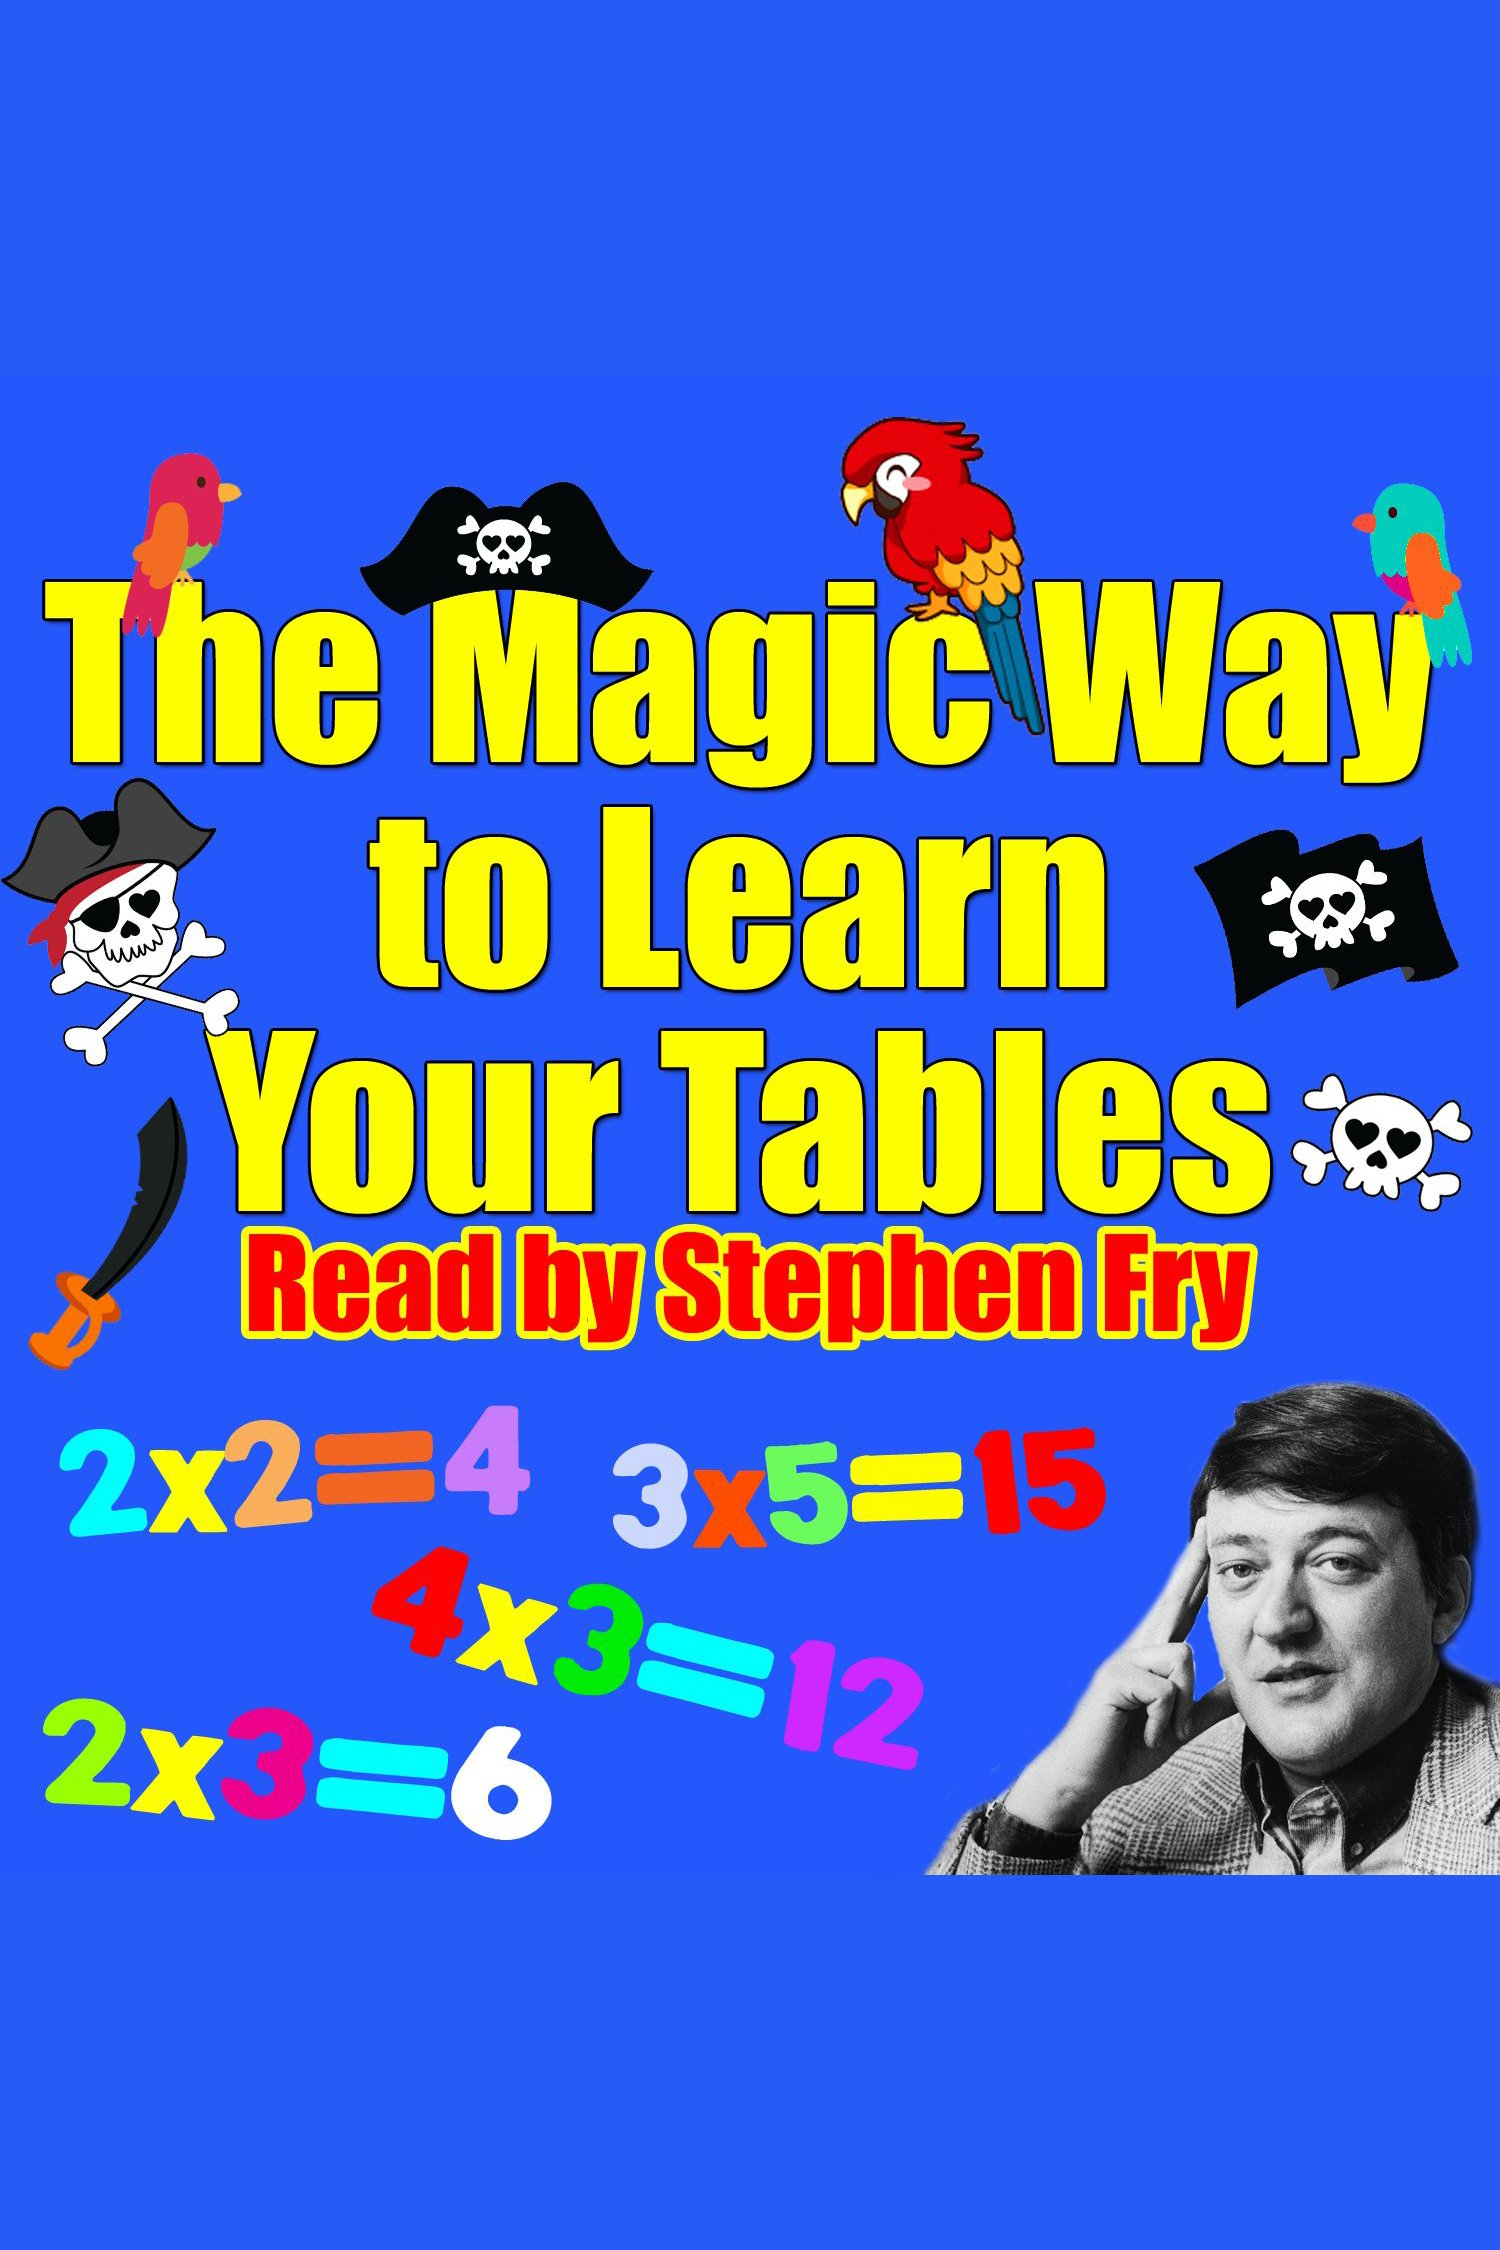 The Magic Way to Learn Your Tables cover image